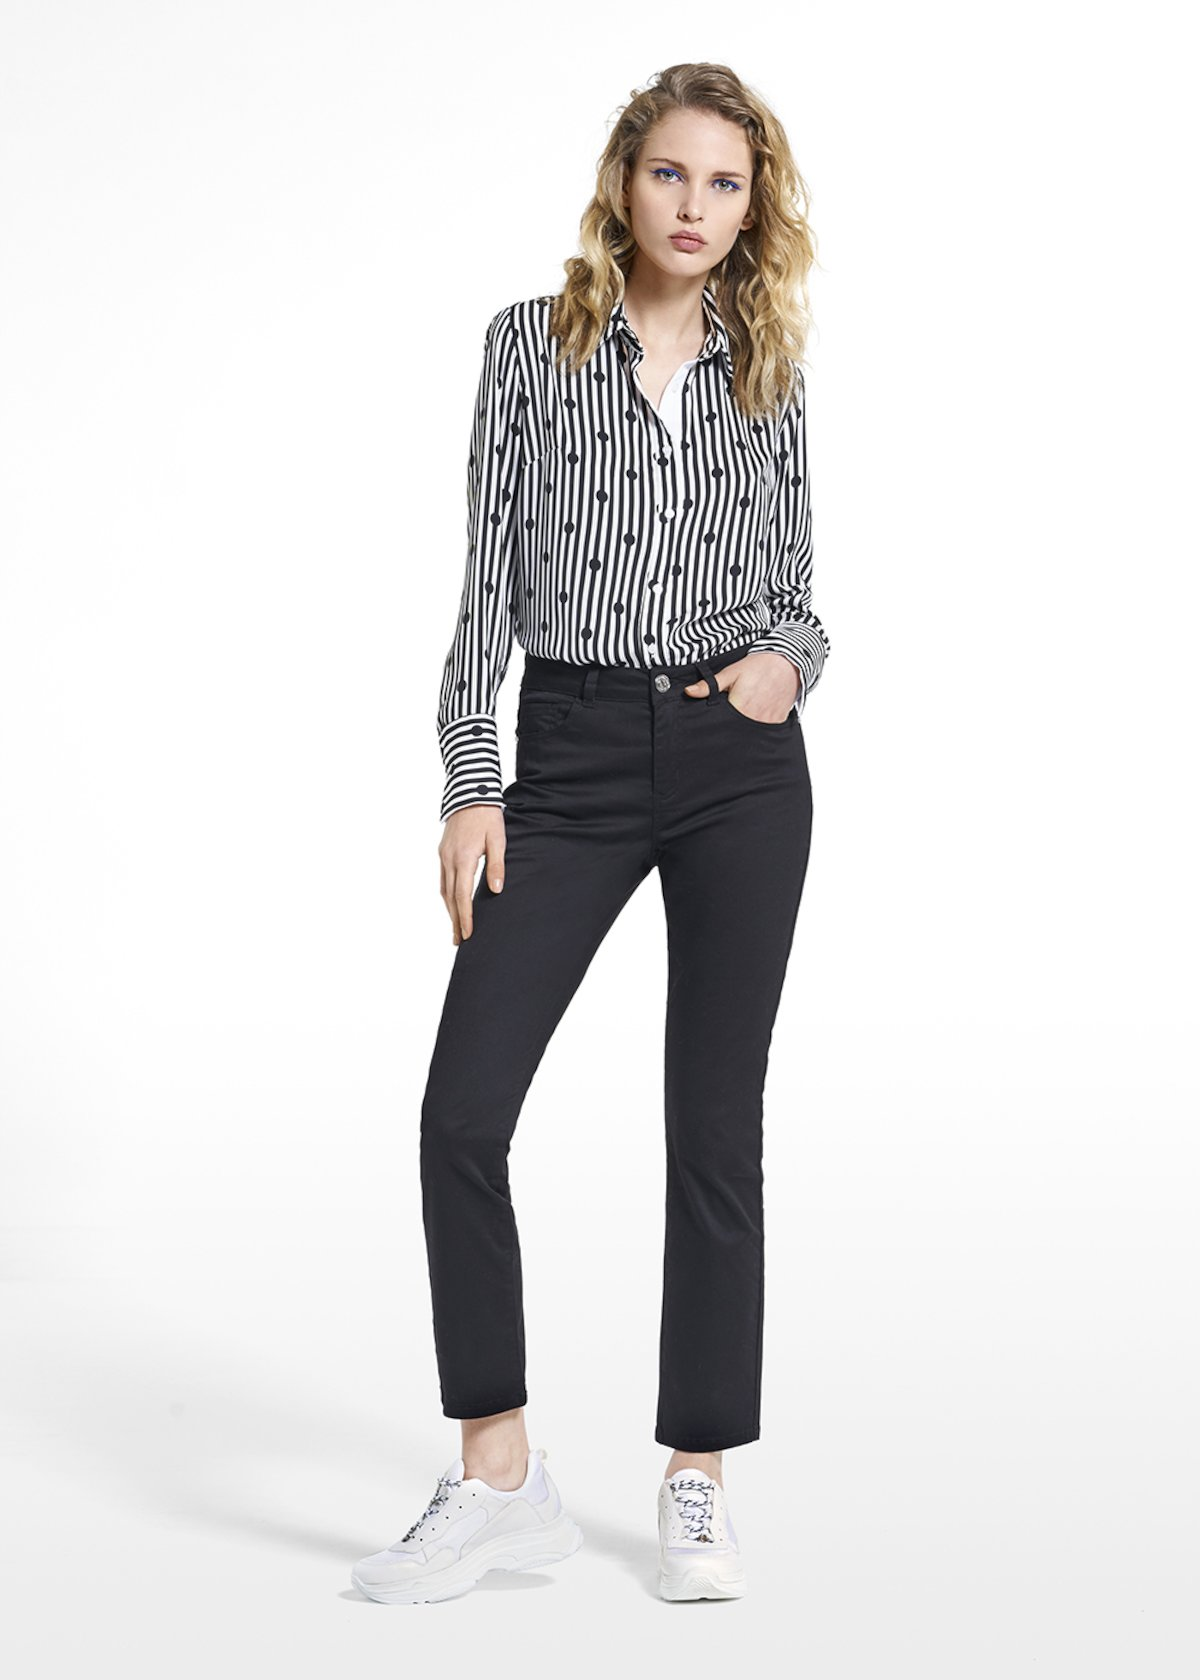 Long-sleeved patterned blouse Carla - White / Black Stripes - Woman - Category image